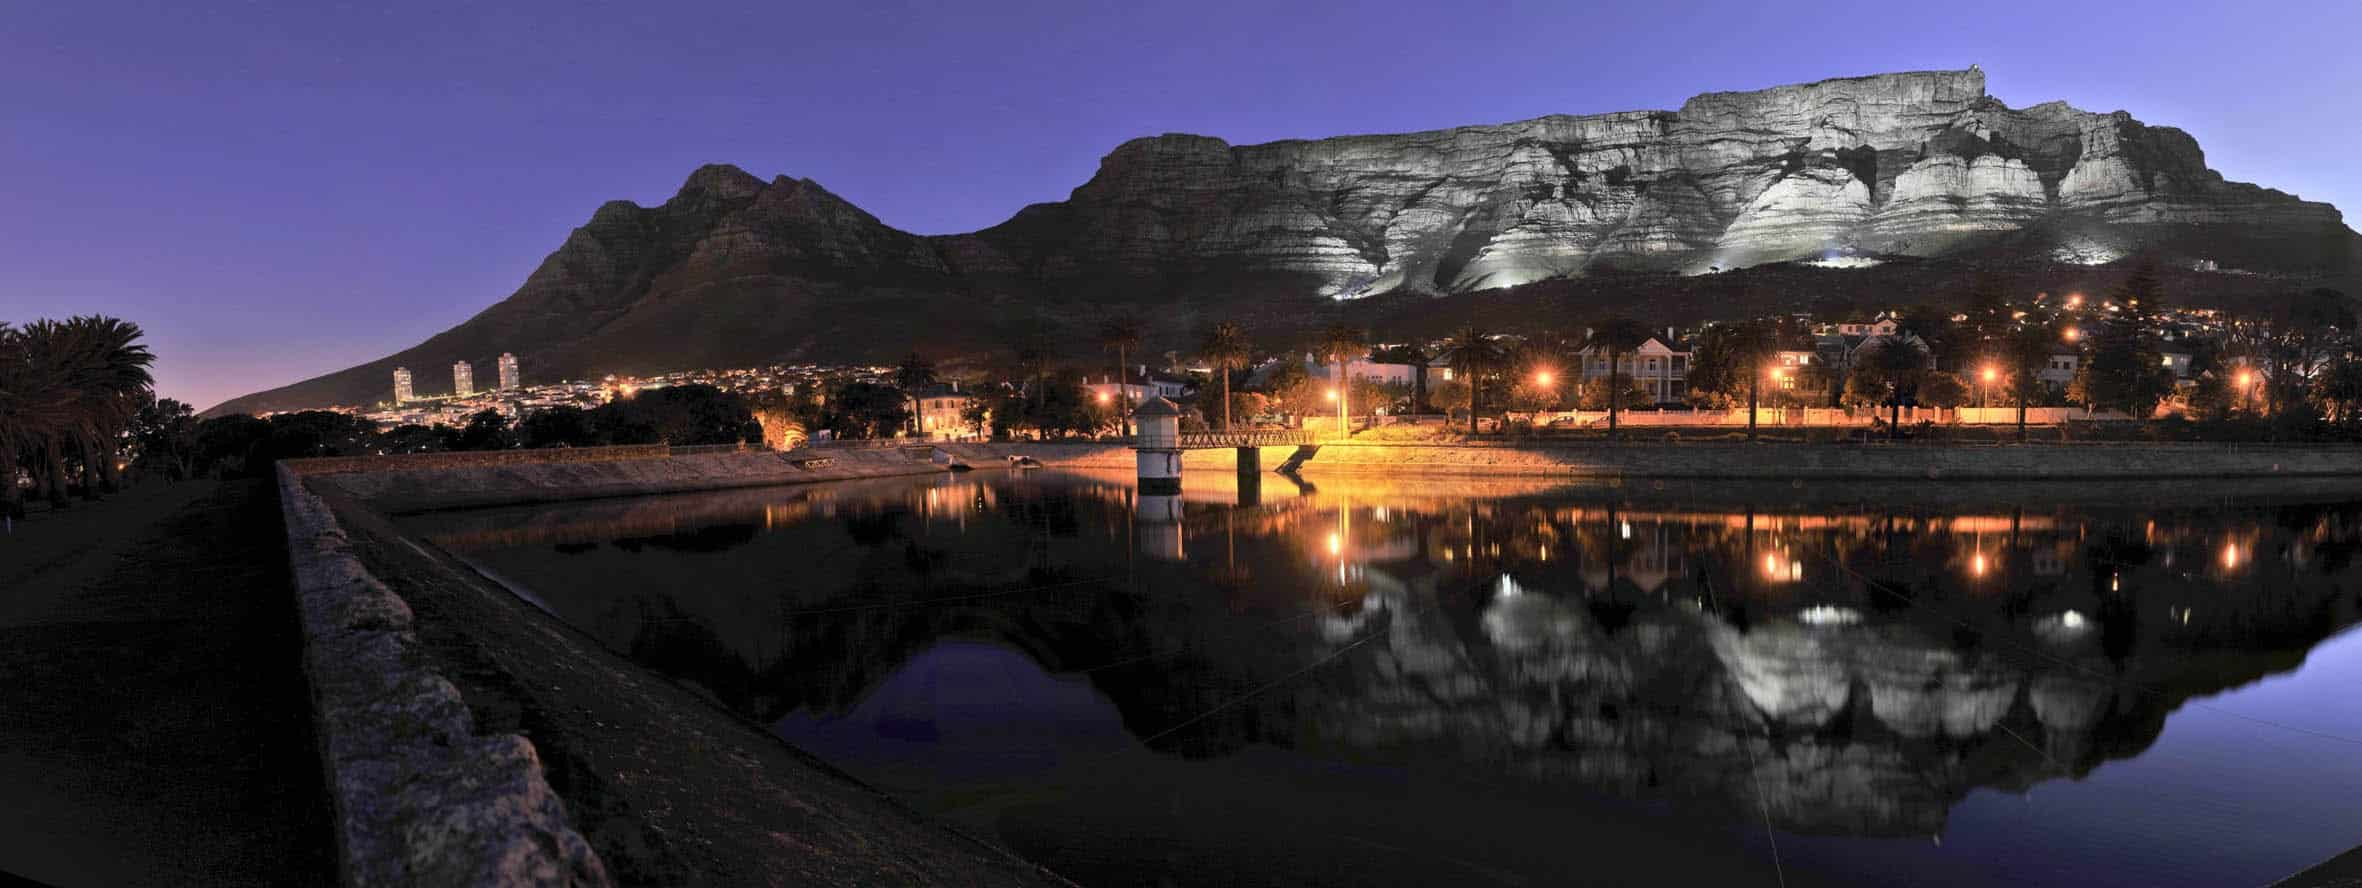 Cape Town's table mountain at night